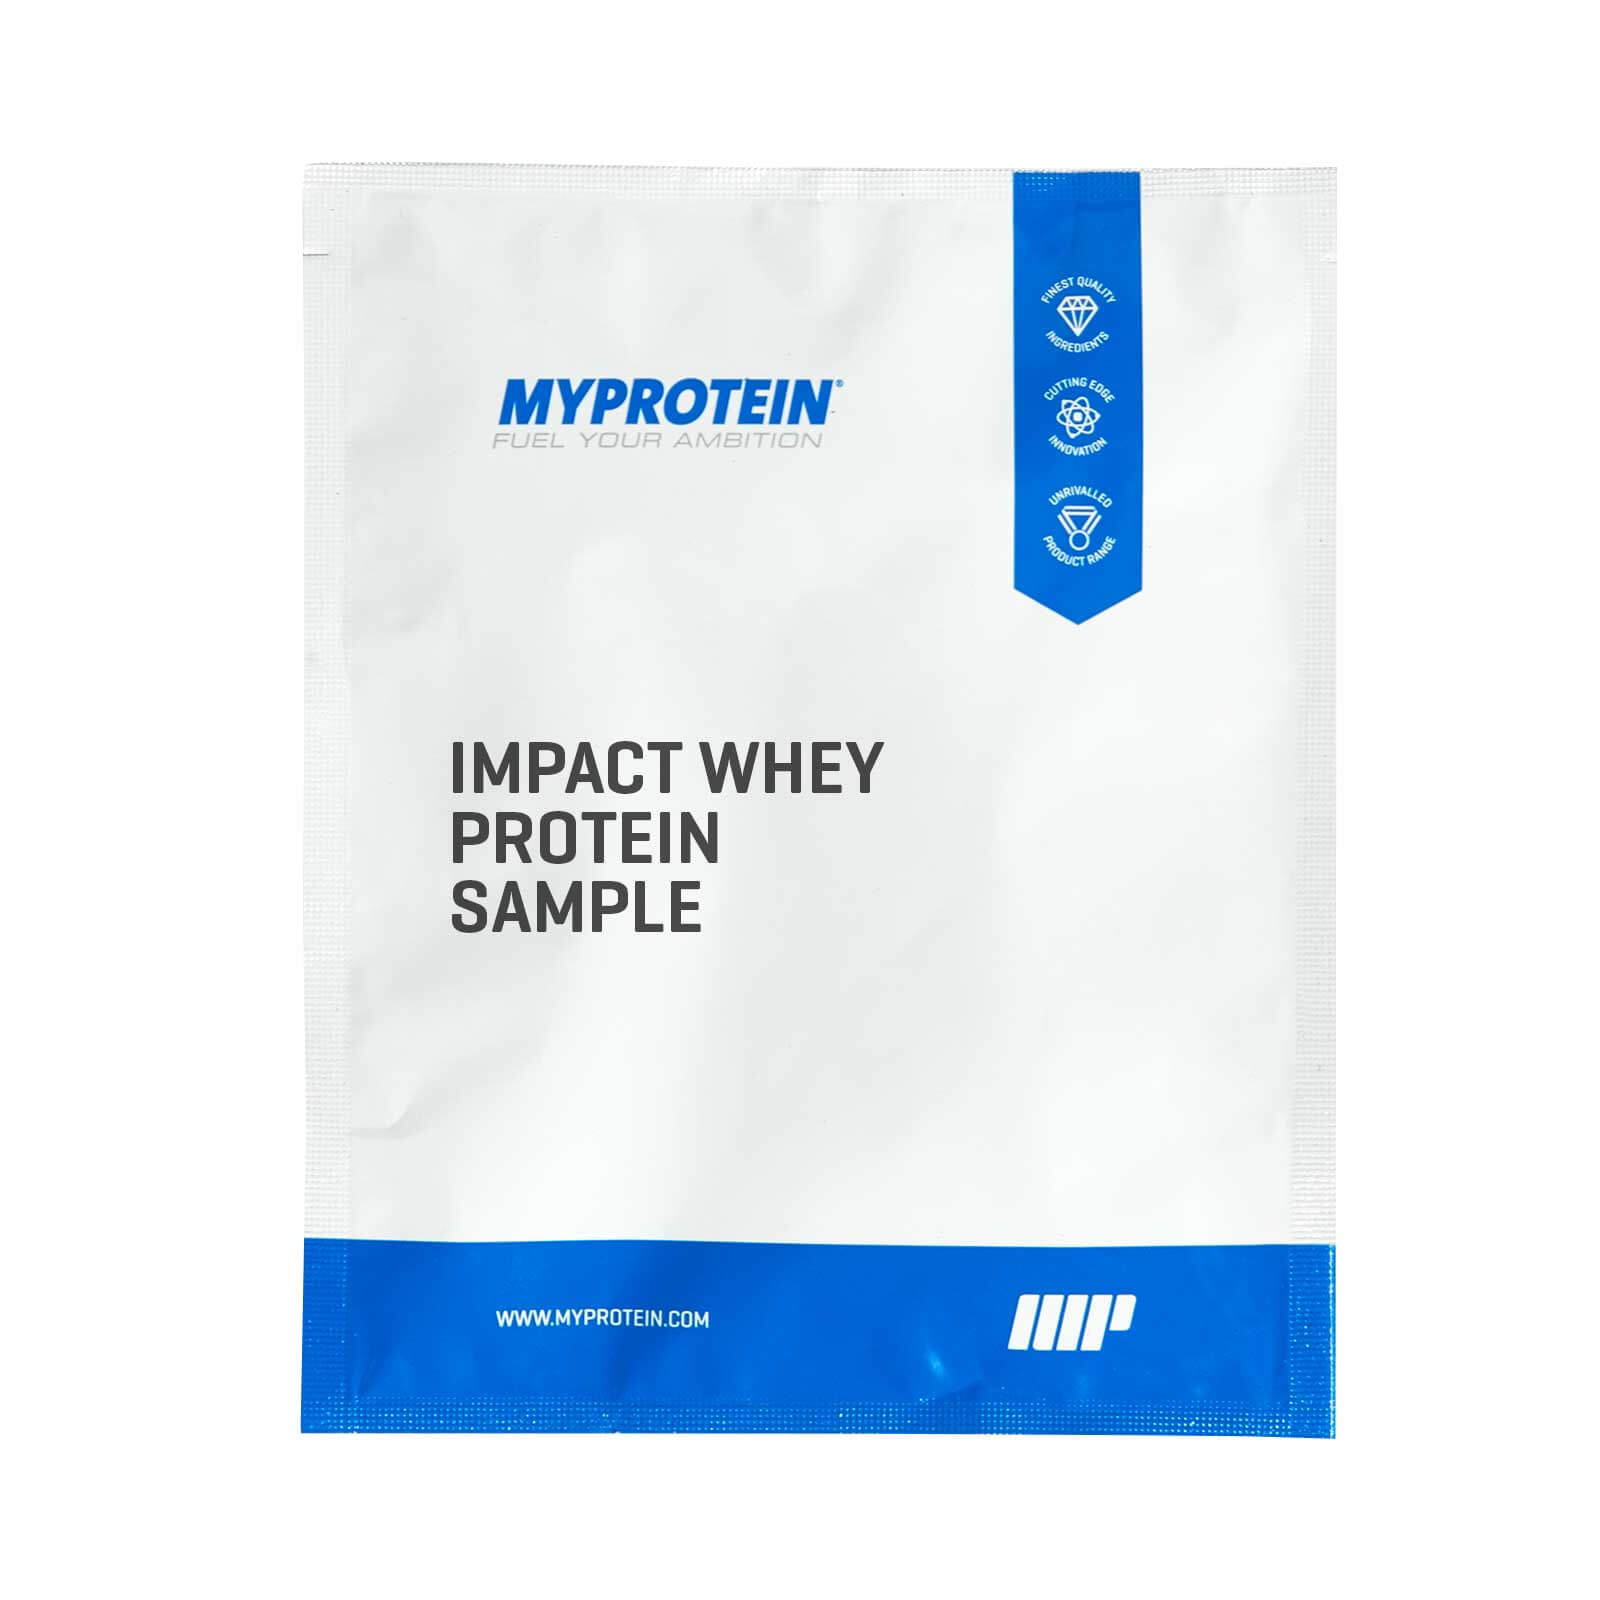 Impact Whey Protein (Sample) - Chocolate Mint 25G